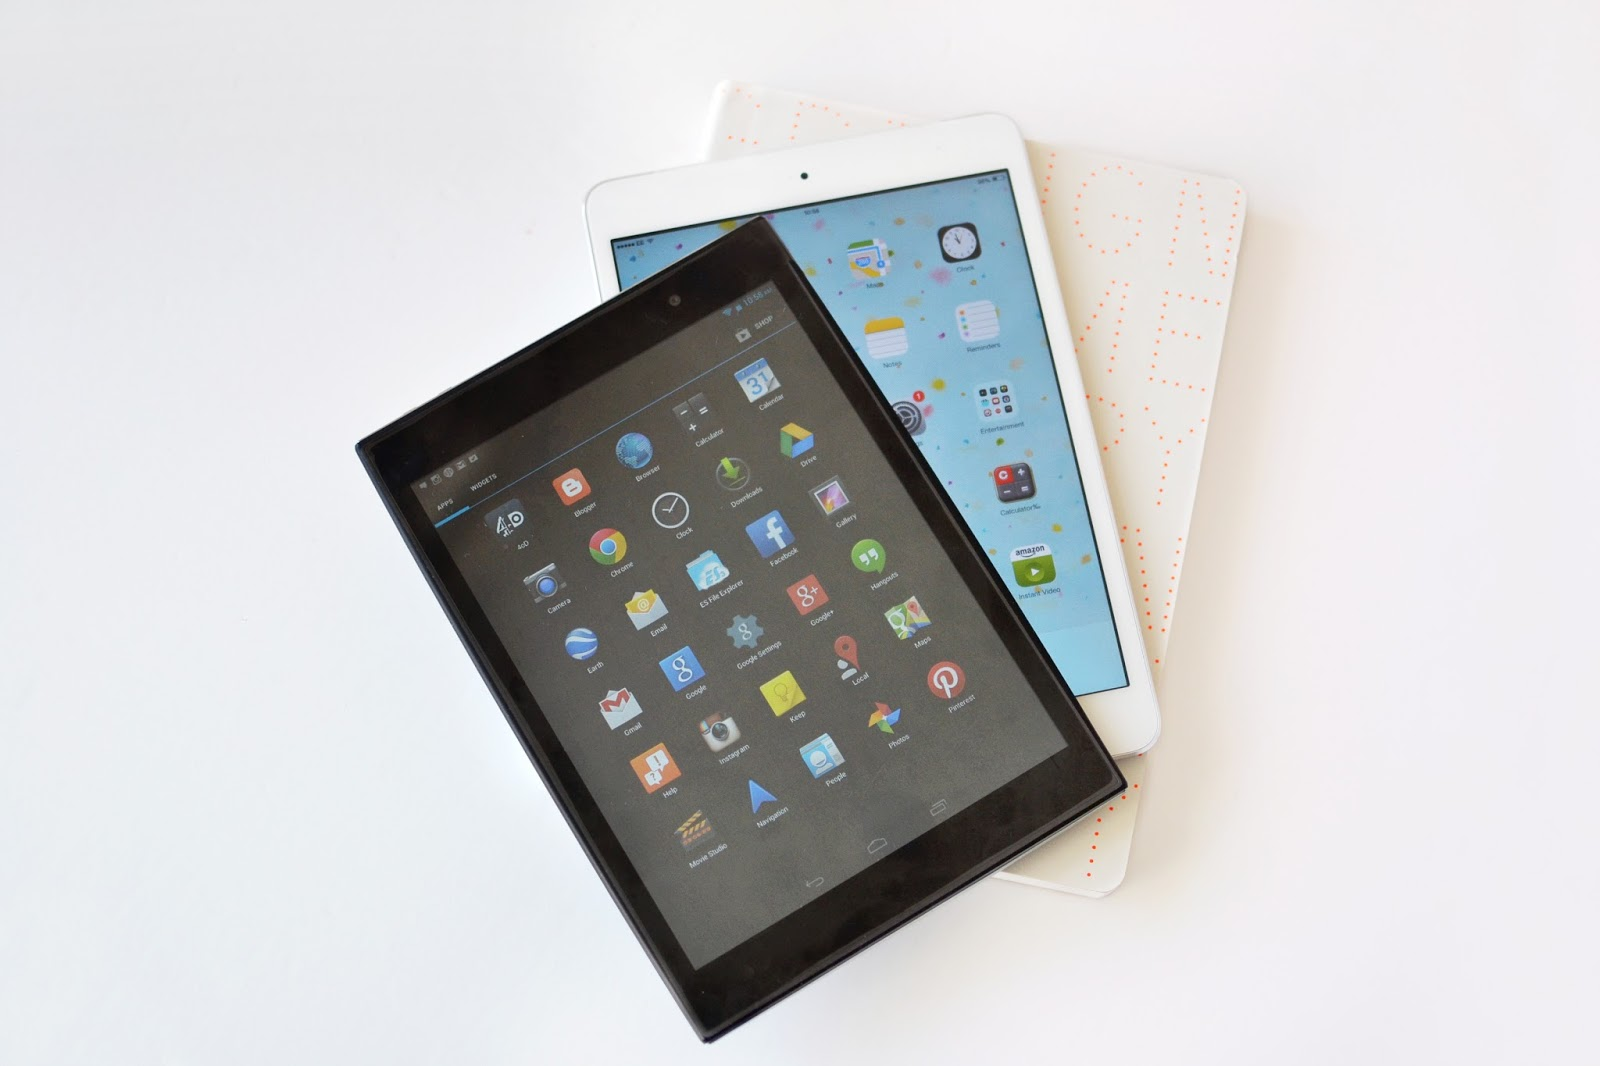 gigaset qv830 tablet review